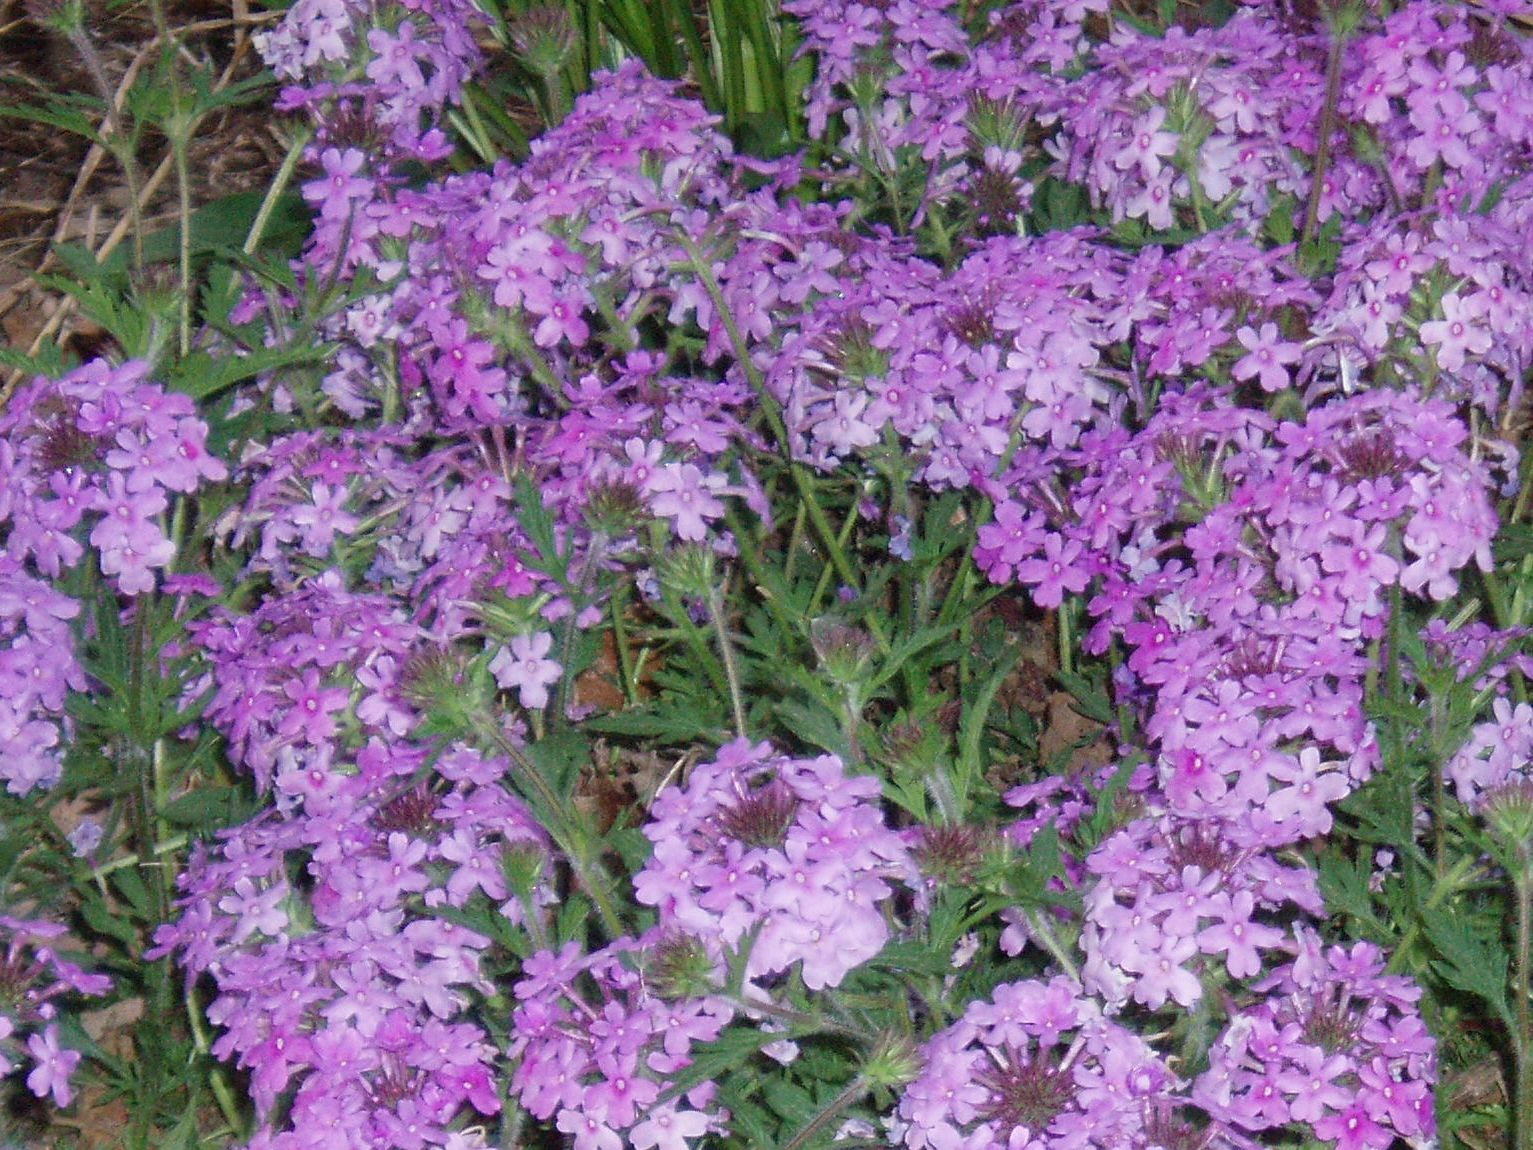 "{""blocks"":[{""key"":""9h8cm"",""text"":""Glandularia canaden Verbena canadensis Rose Vervain - potted plants email john@easywildflowers.com"",""type"":""unstyled"",""depth"":0,""inlineStyleRanges"":[],""entityRanges"":[],""data"":{}}],""entityMap"":{}}"